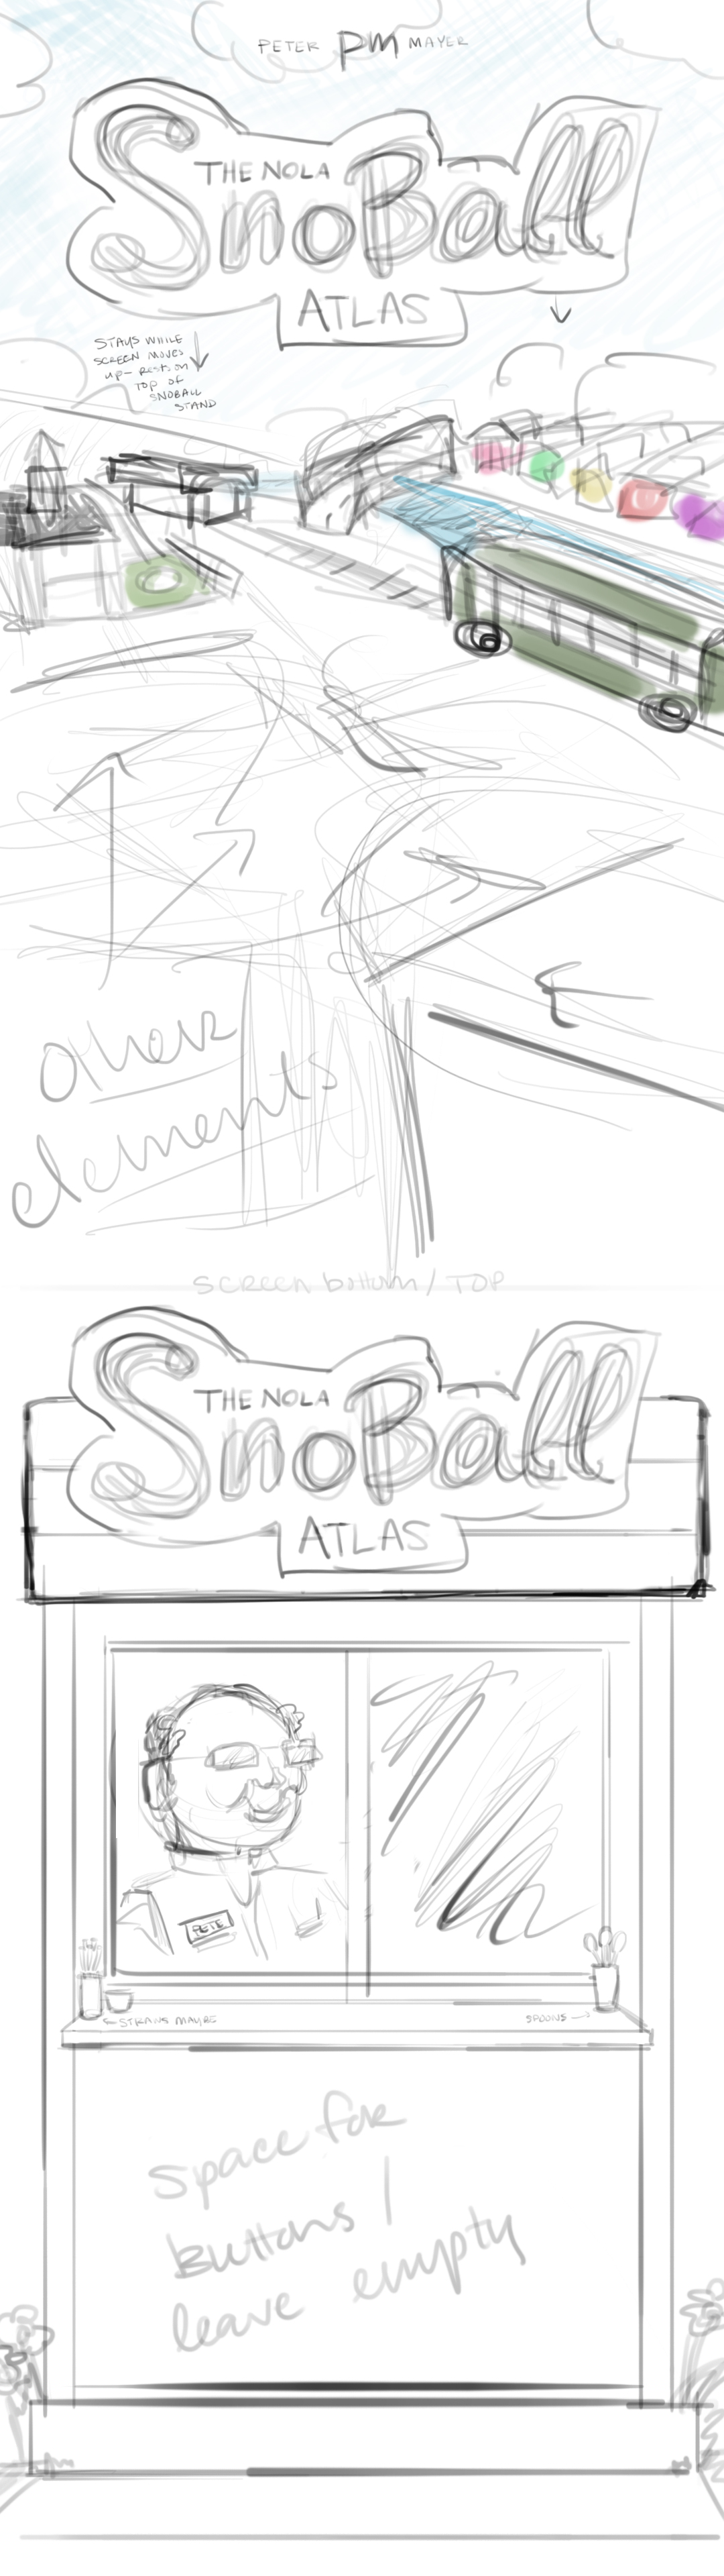 snoball_splash-screen_sketch.jpg